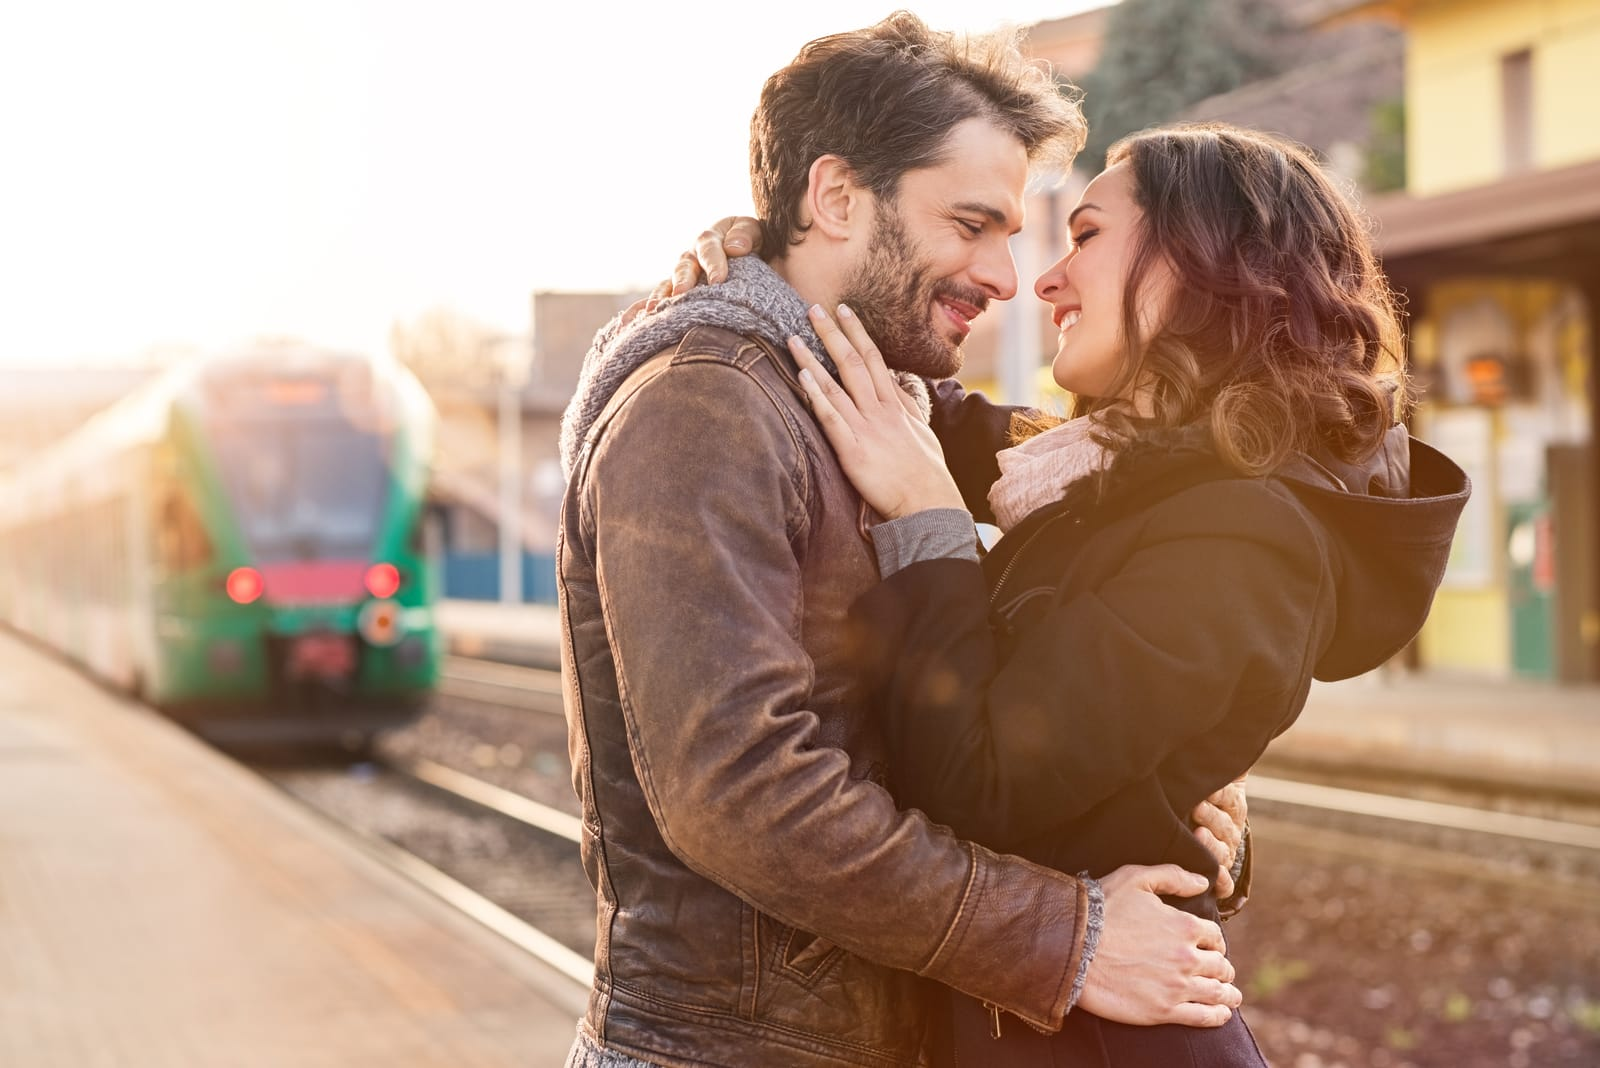 a couple in love at a train station hugging and kissing